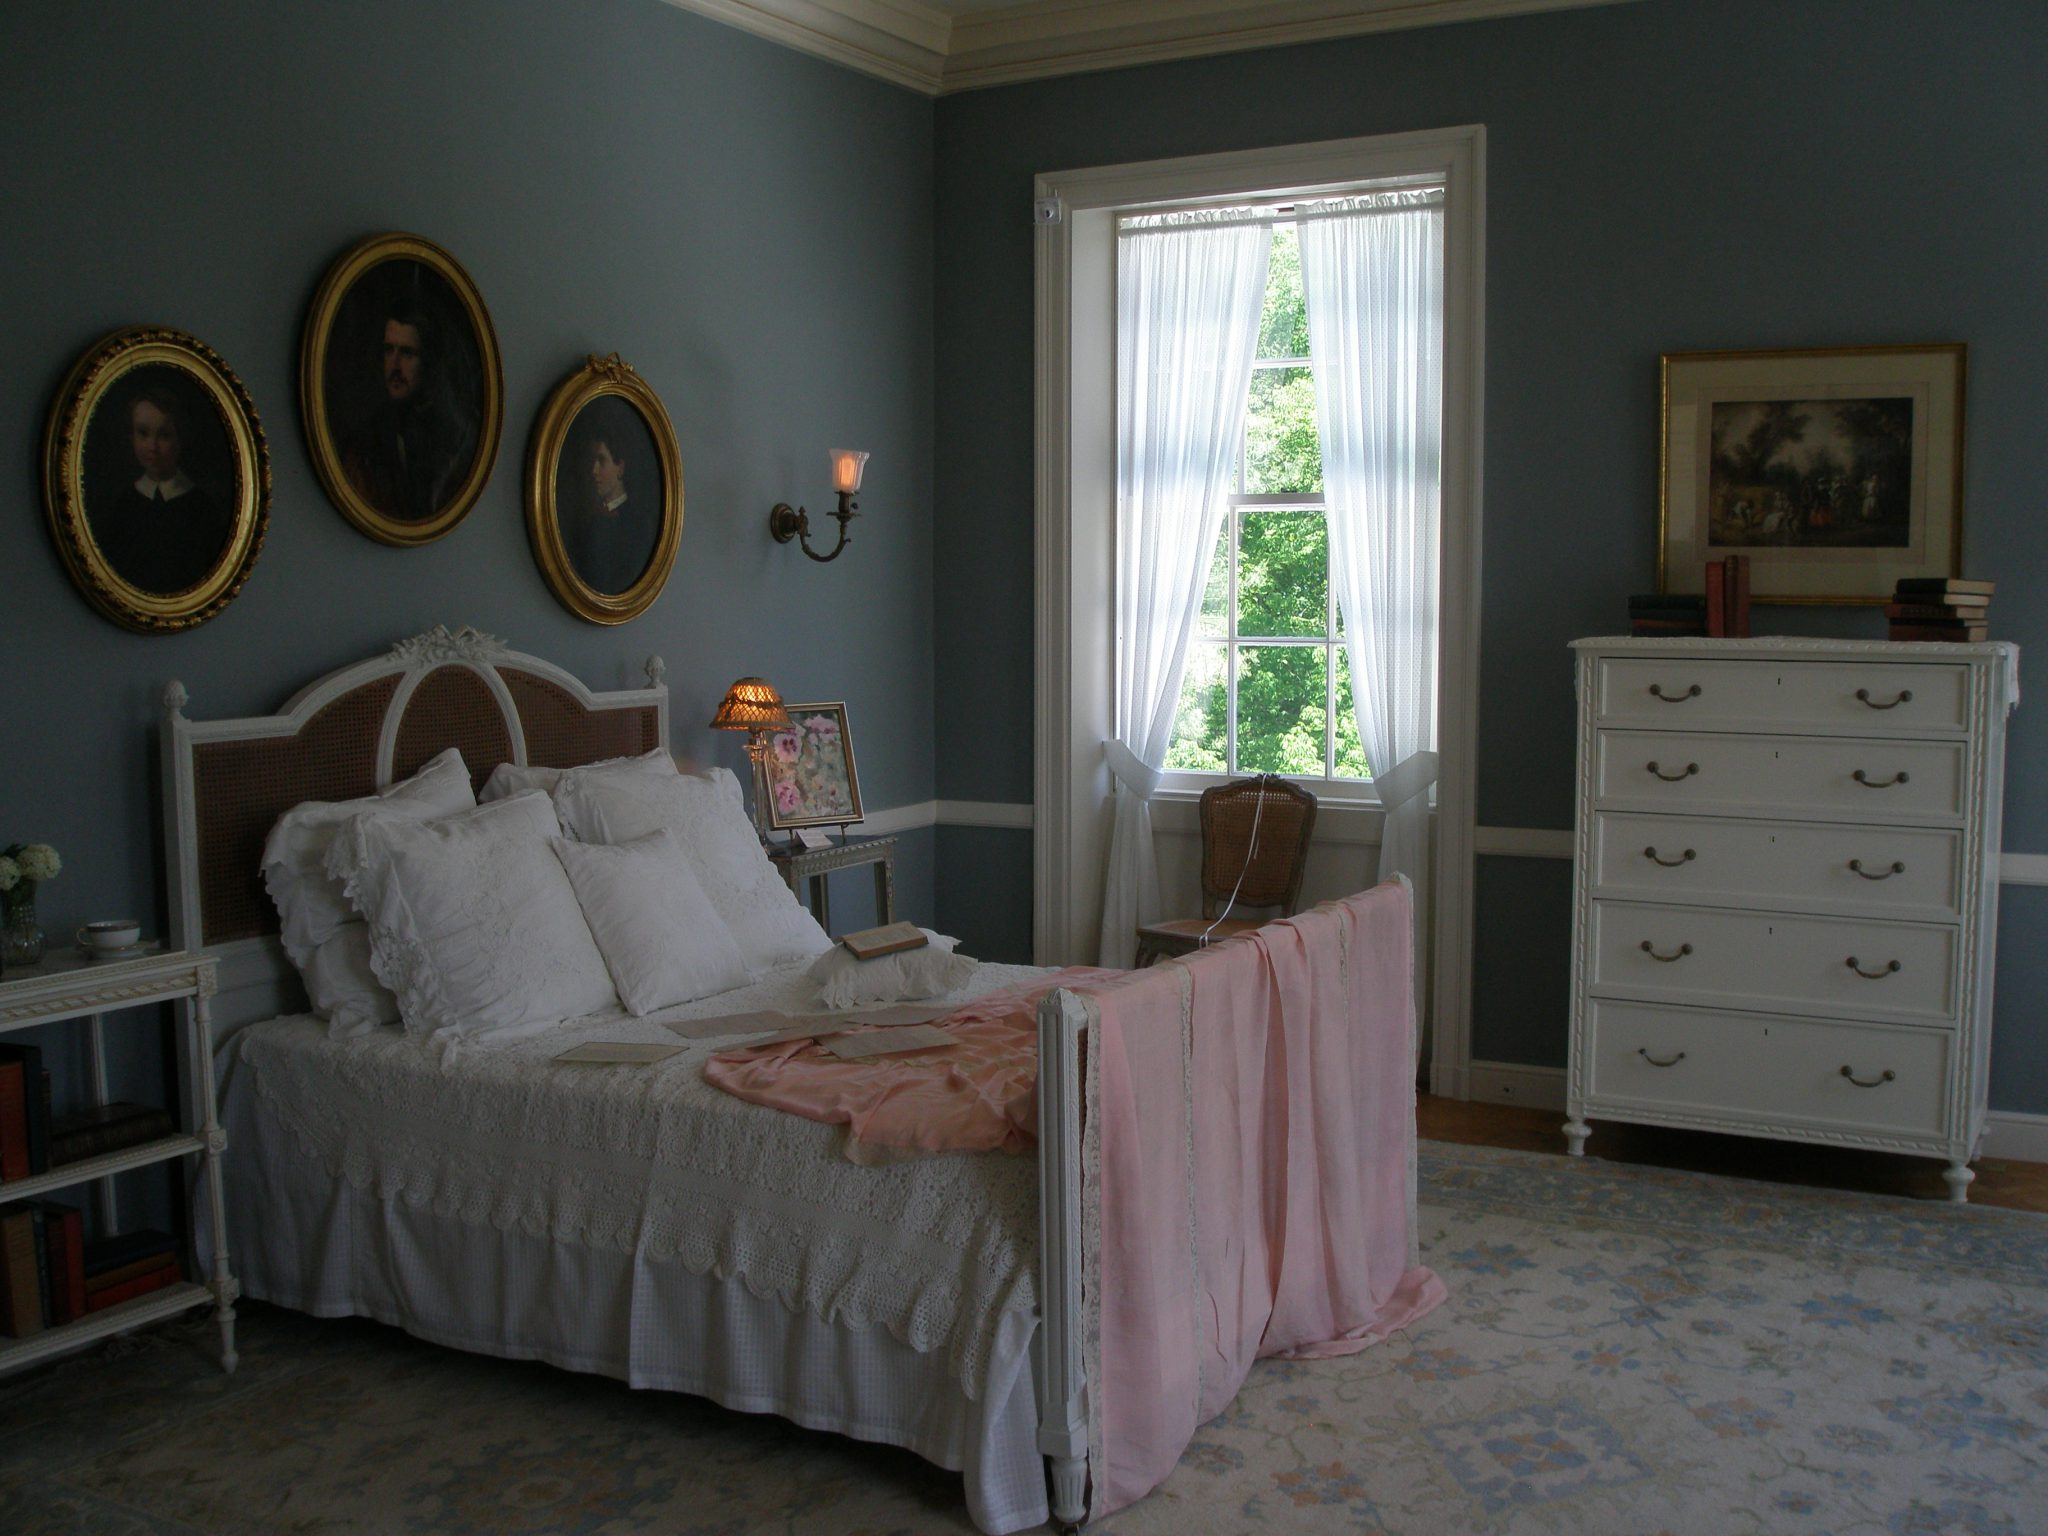 "Edith Wharton's Bedroom. Wharton did most of her writing in this room; she would awaken early and write in bed, dropping the finished pages to the floor, where her secretary would eventually collect them. The Bedroom furnishings we see today are not originals...no one alive knows exactly what this room looked like during Edith's tenure at The Mount. Interior decorators have followed the design rules in ""The Decoration Houses,"" and are confident that the rather spare appearance of the room is in keeping with Wharton's design approach."